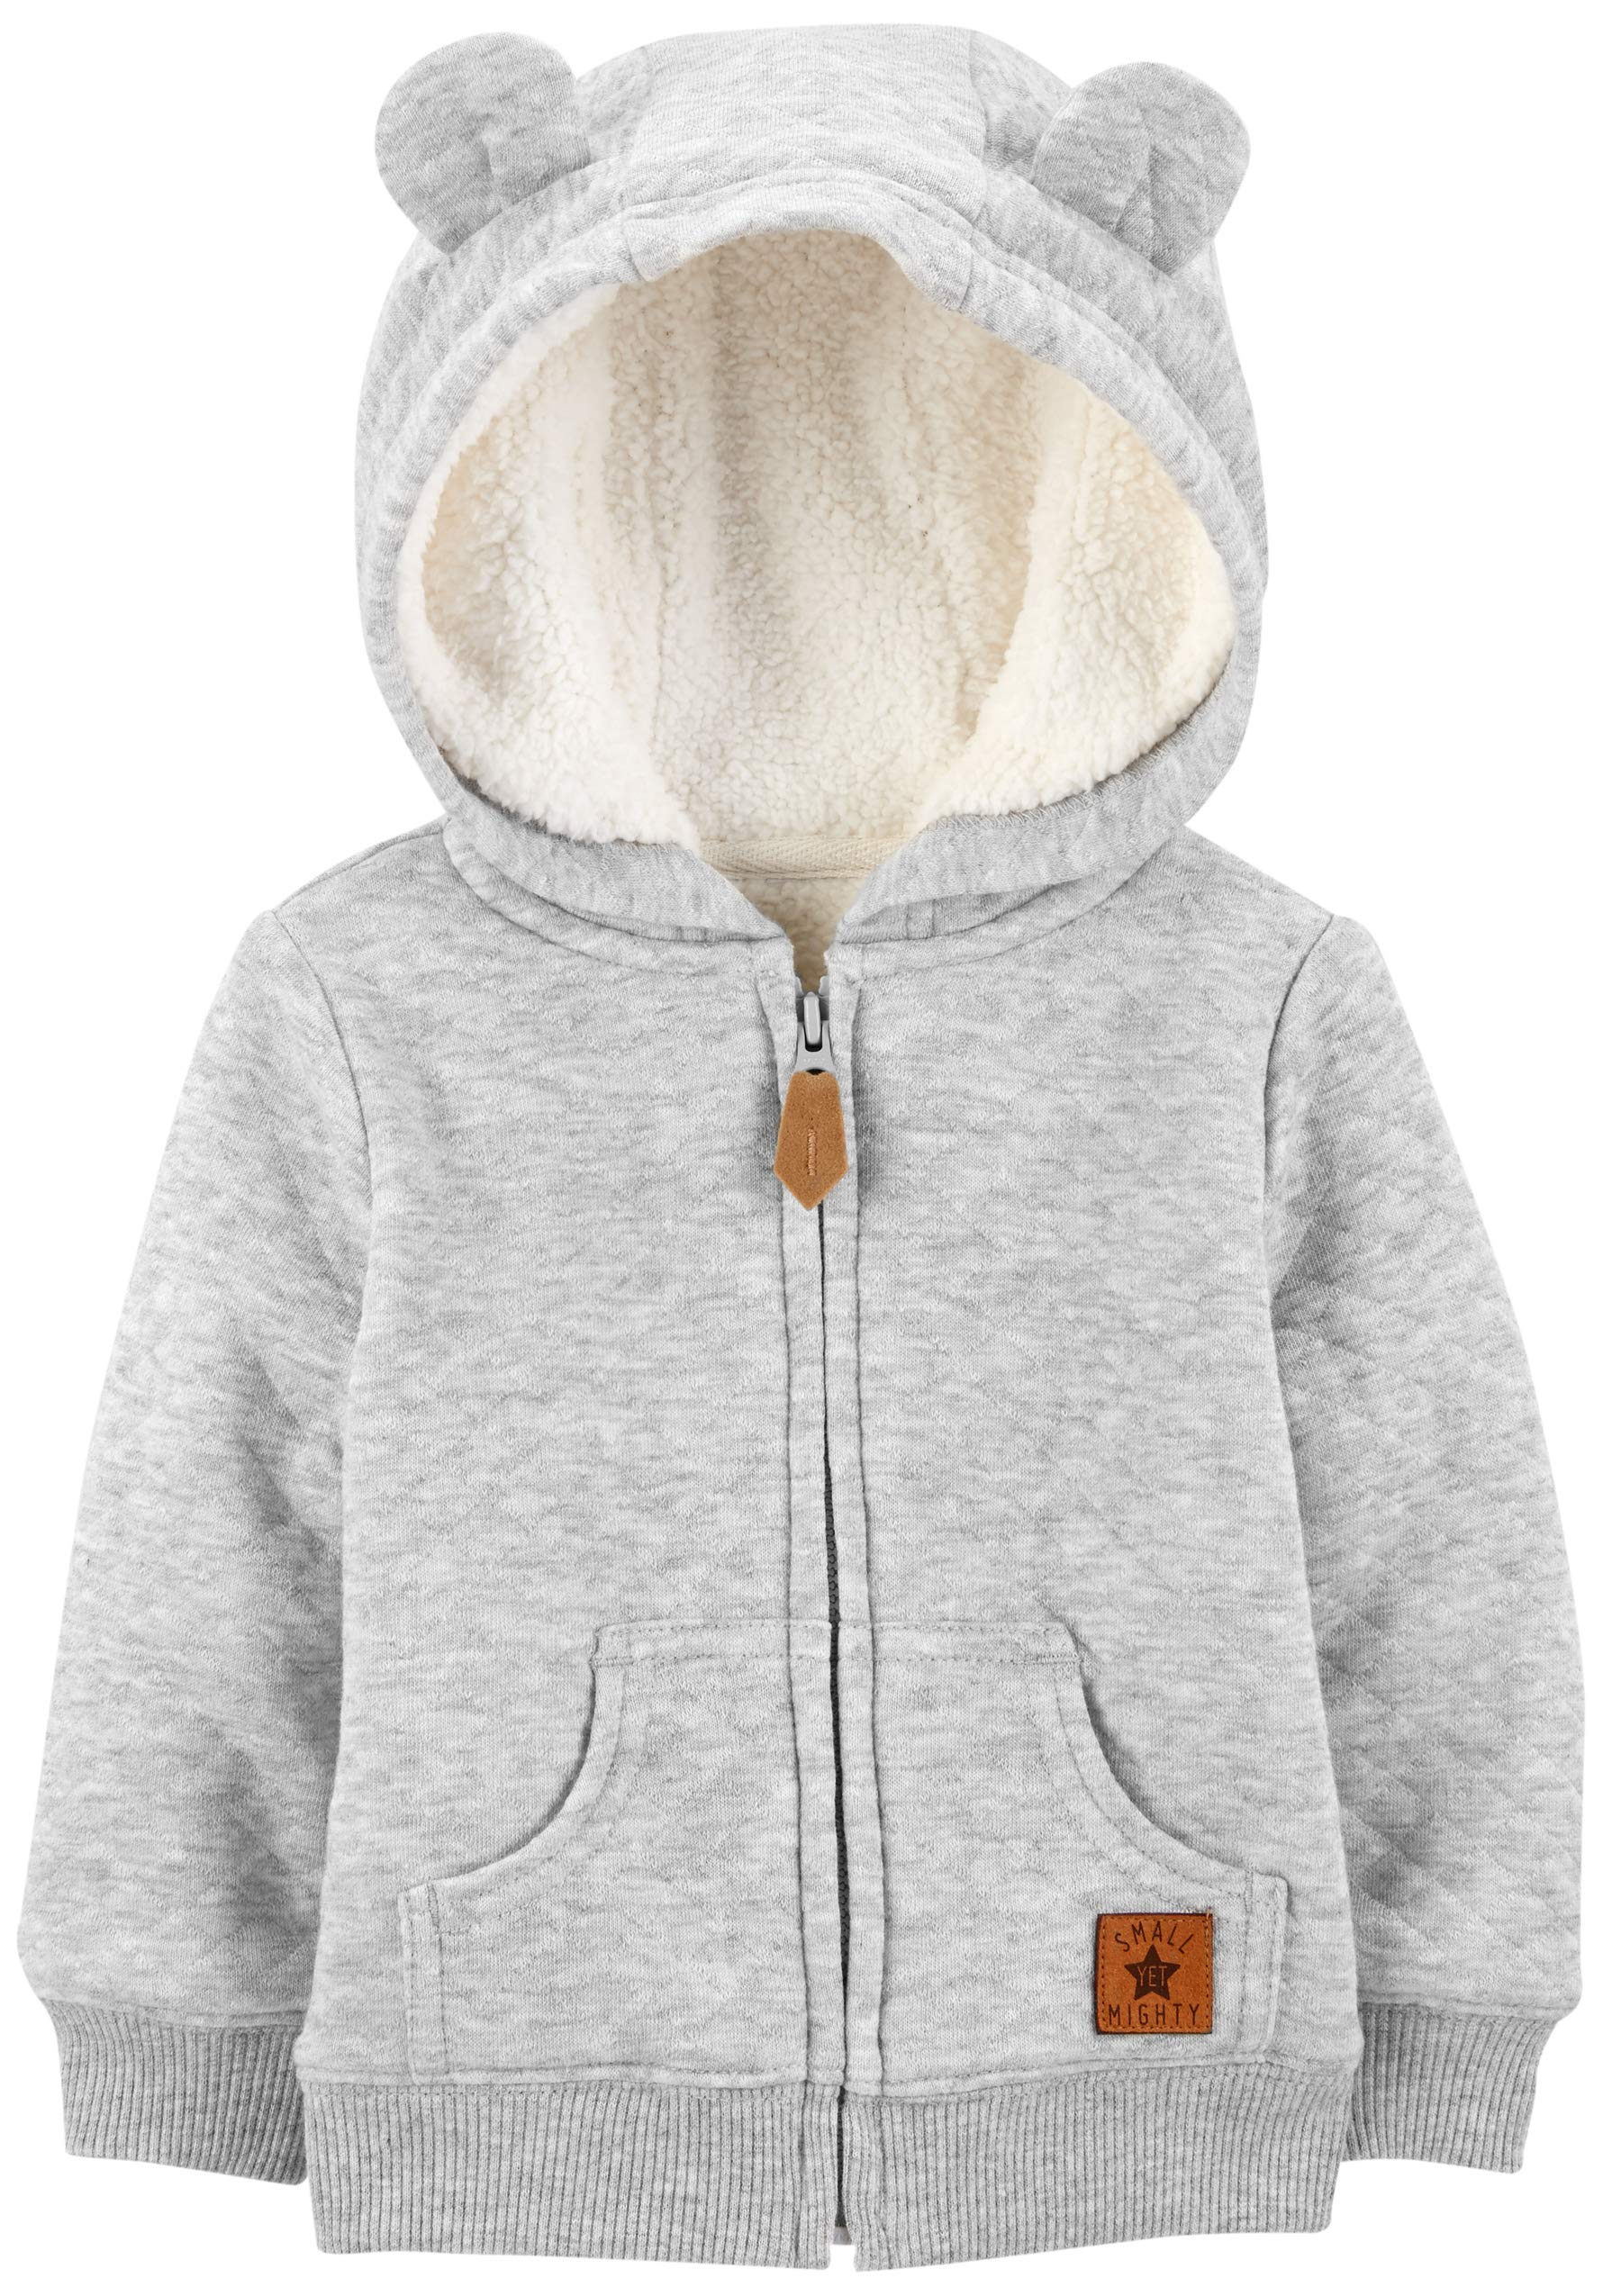 Simple Joys by Carter's Boys' Hooded Sweater Jacket Sherpa Lining, Grey, 3-6 Month by Simple Joys by Carter's